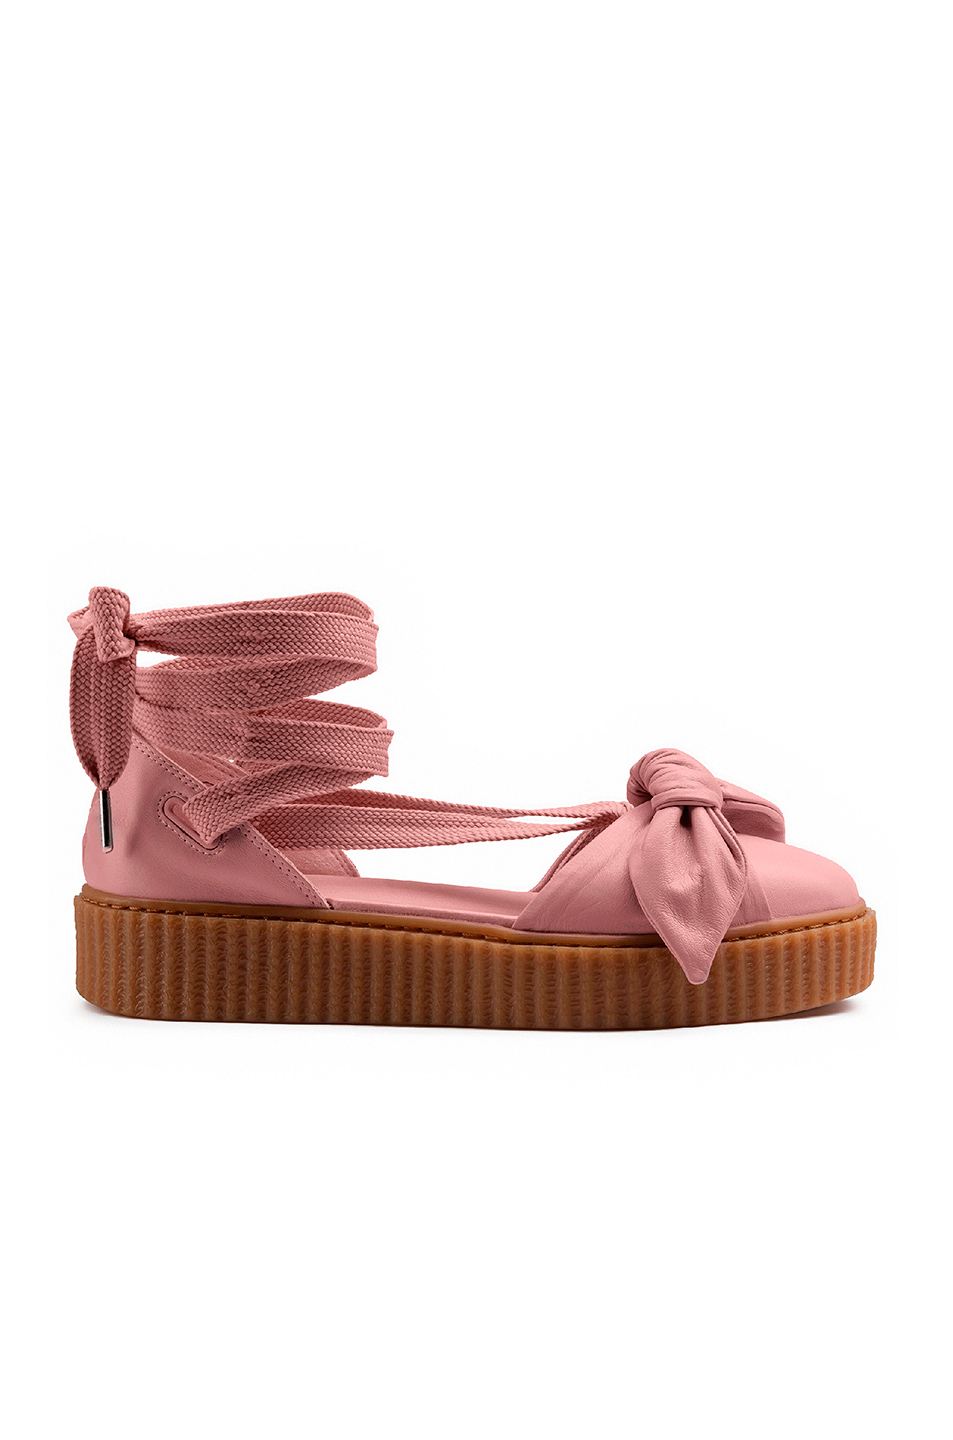 Fenty by Puma Bow Leather Creeper Sandals in Neutrals,Pink